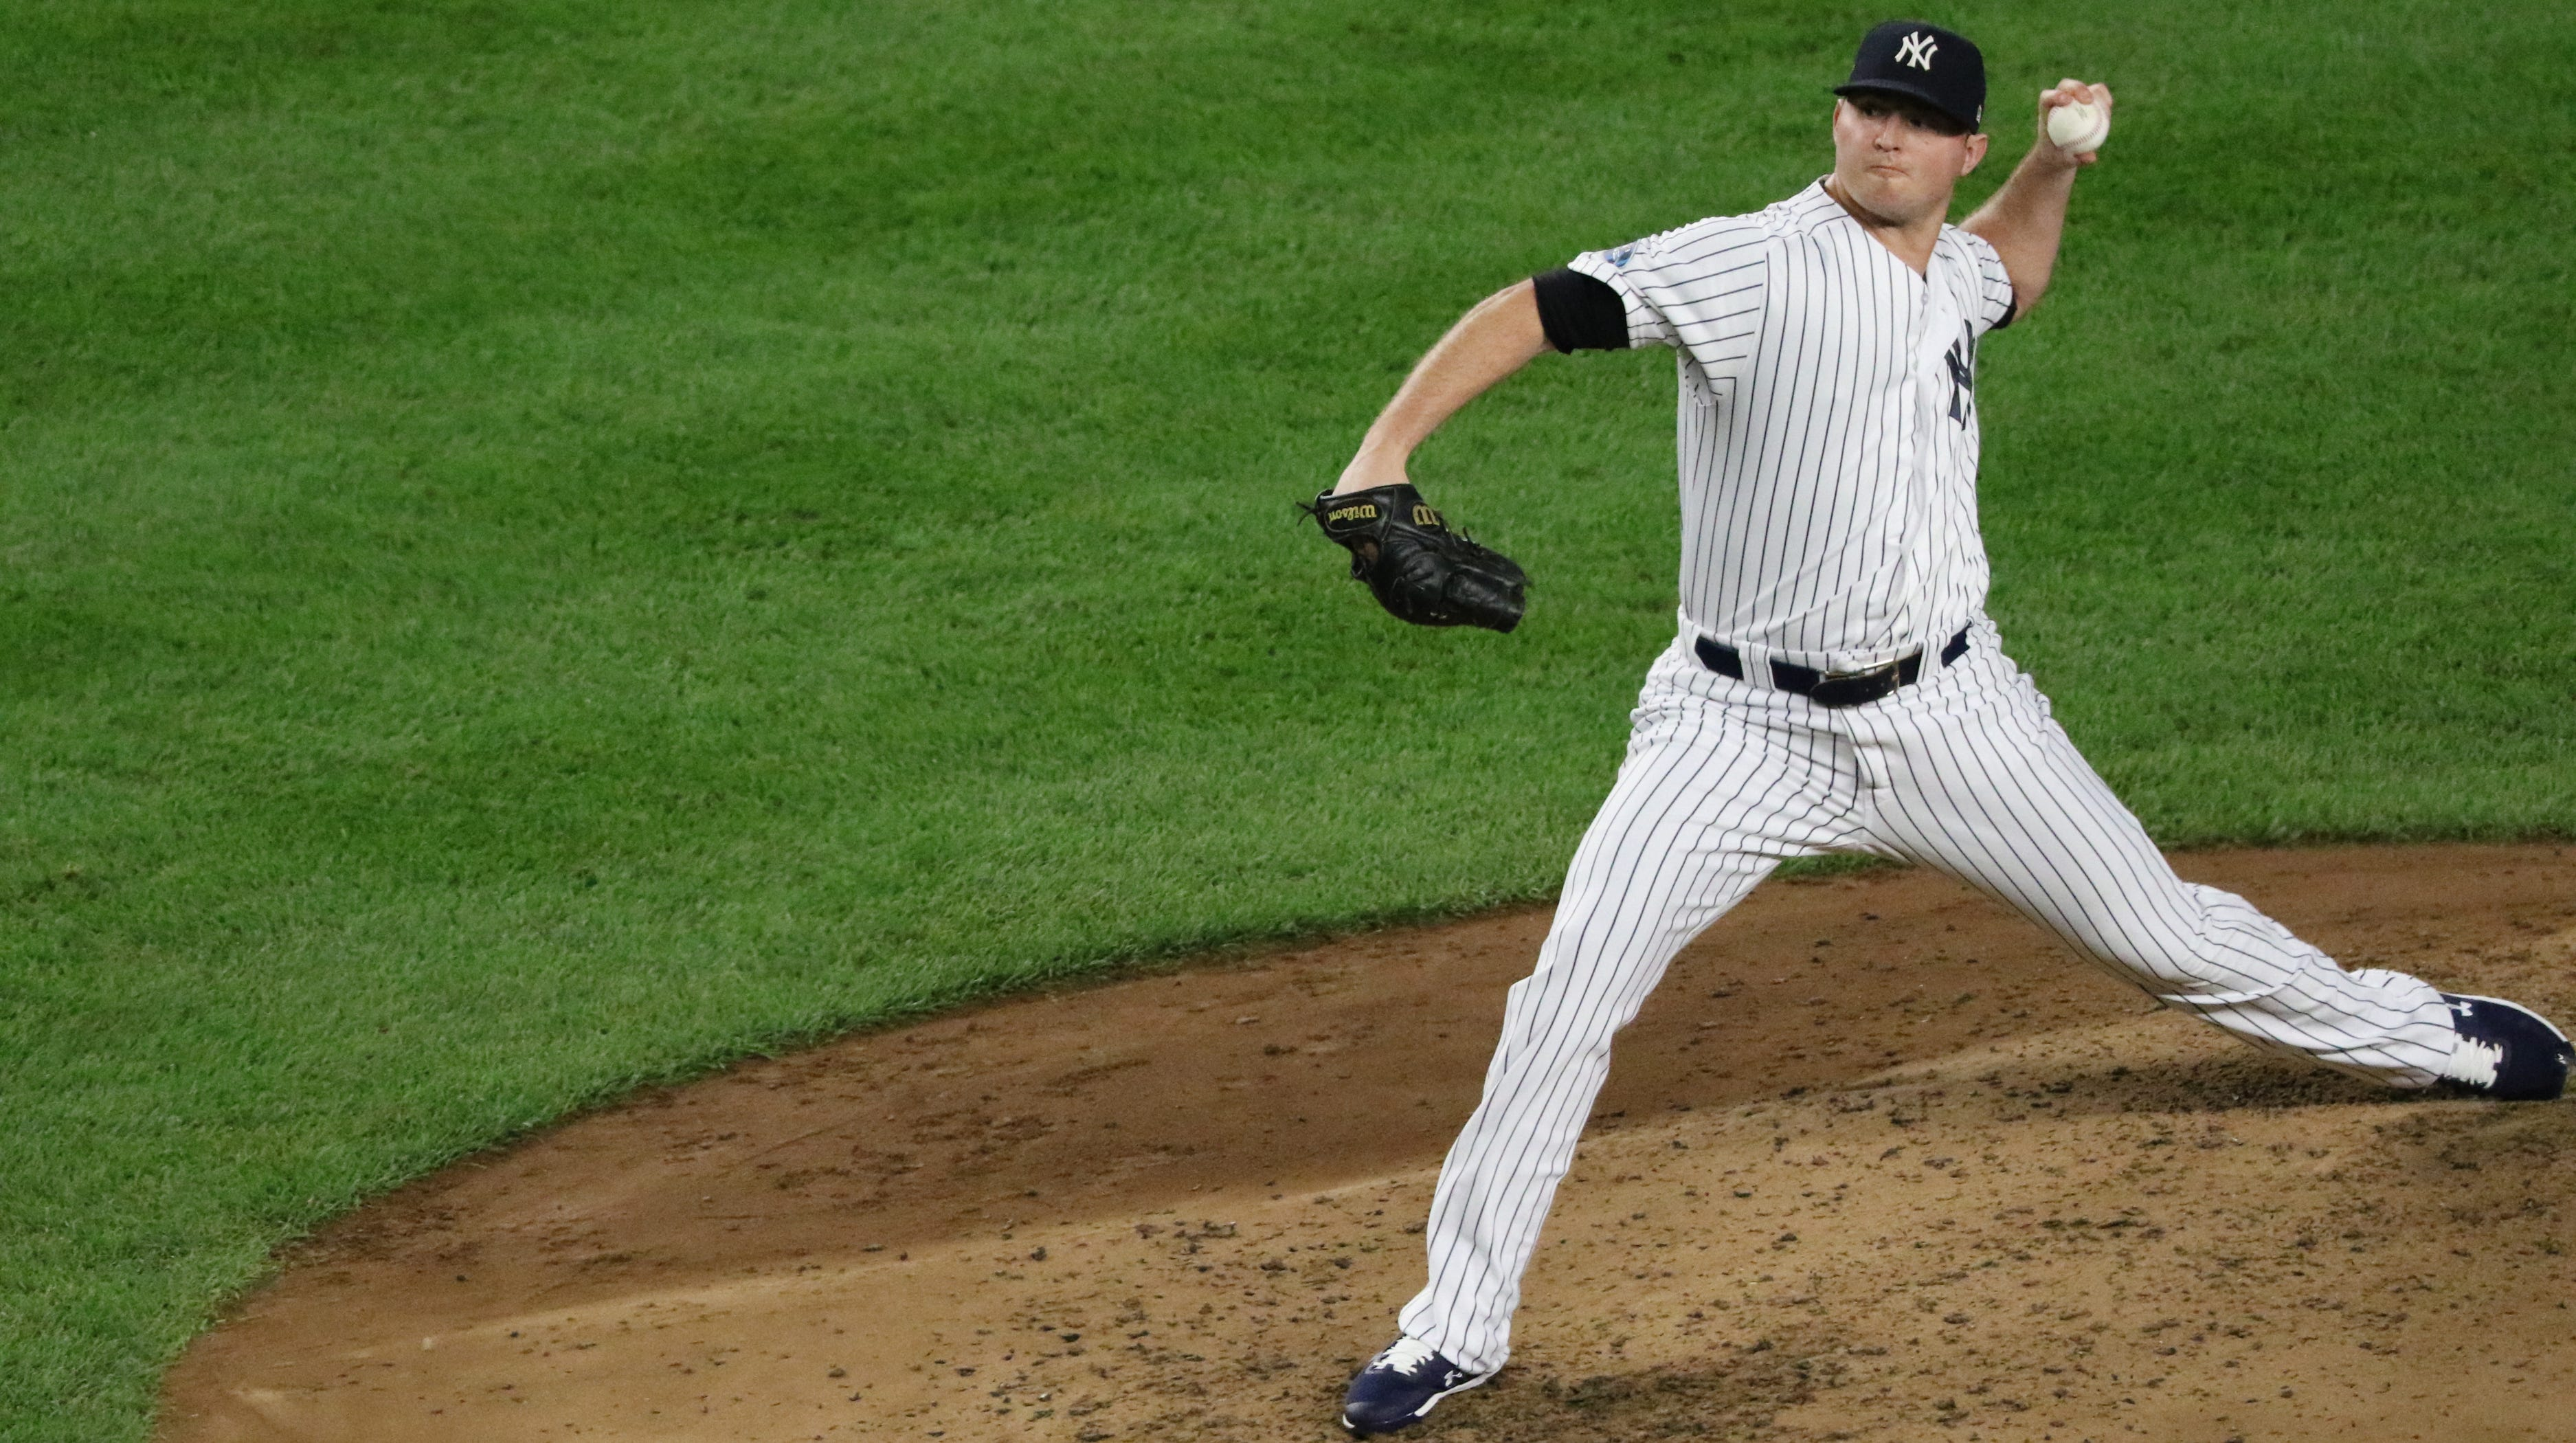 Weighing the New York Yankees options in the free agent relievers market